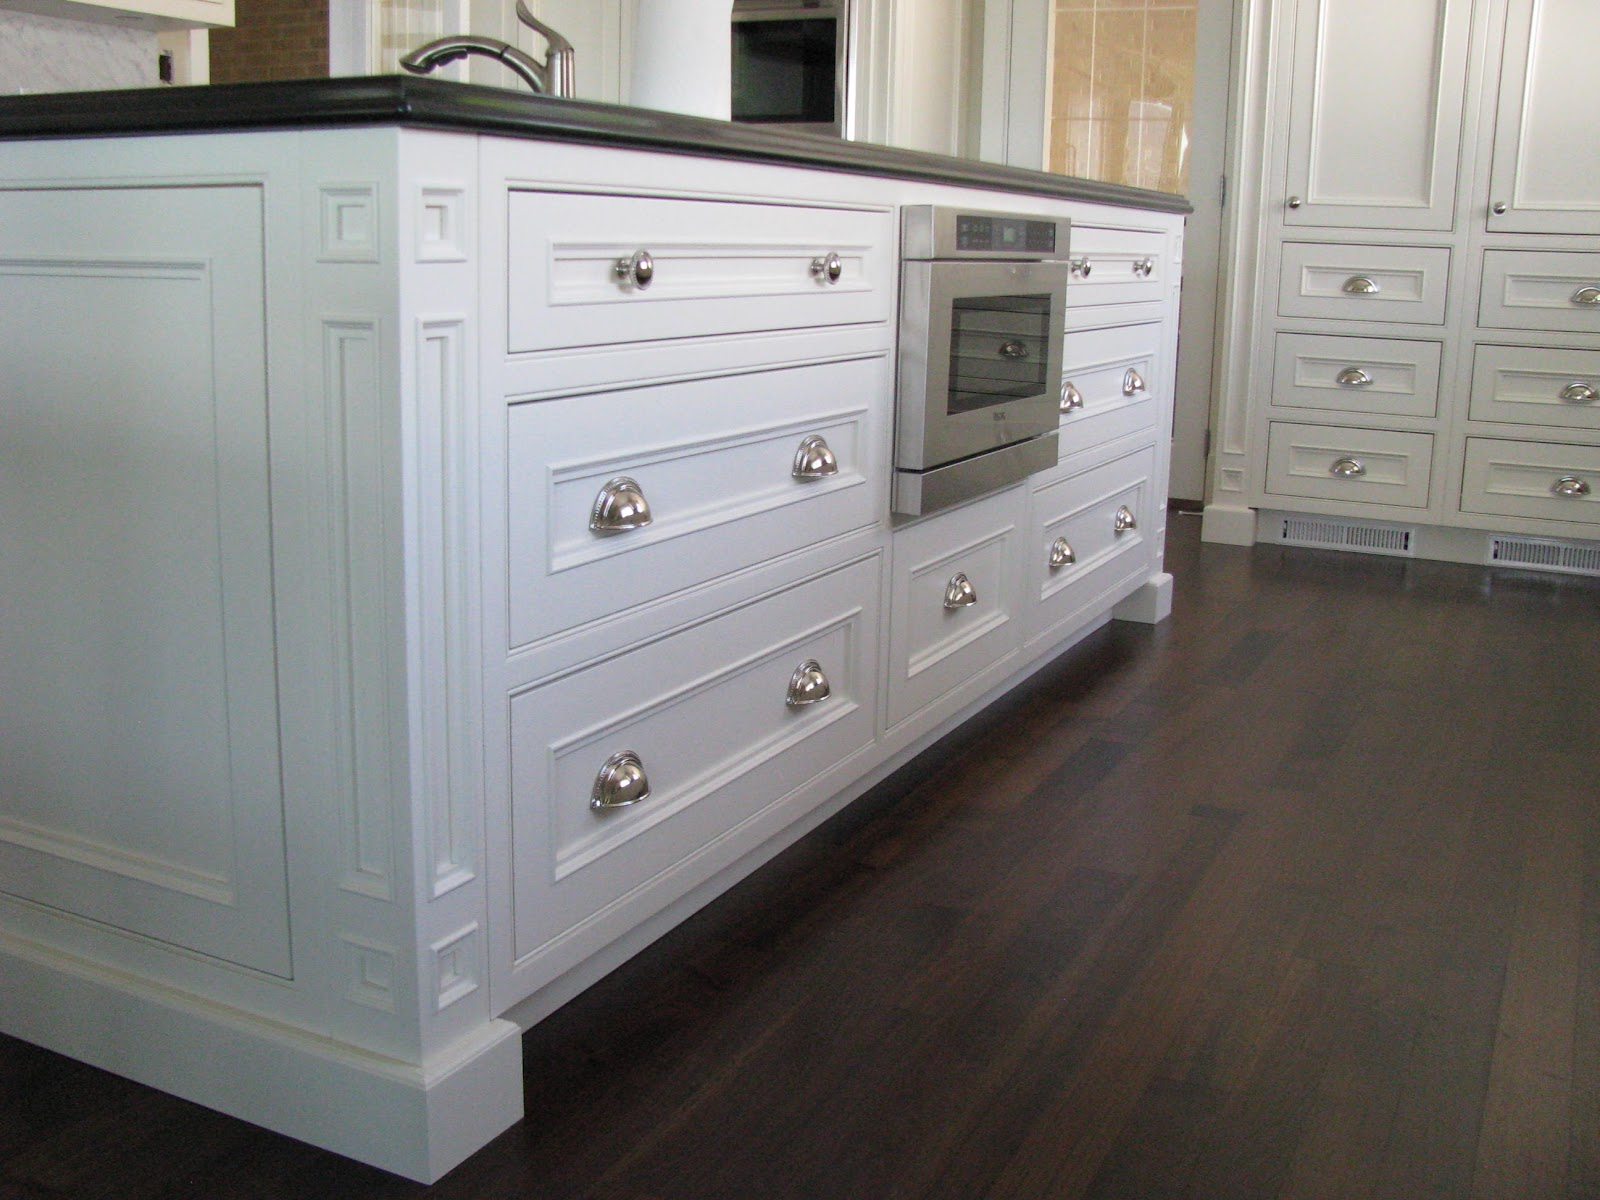 17 Lovely Inset Kitchen Cabinets That Anyone Can Make